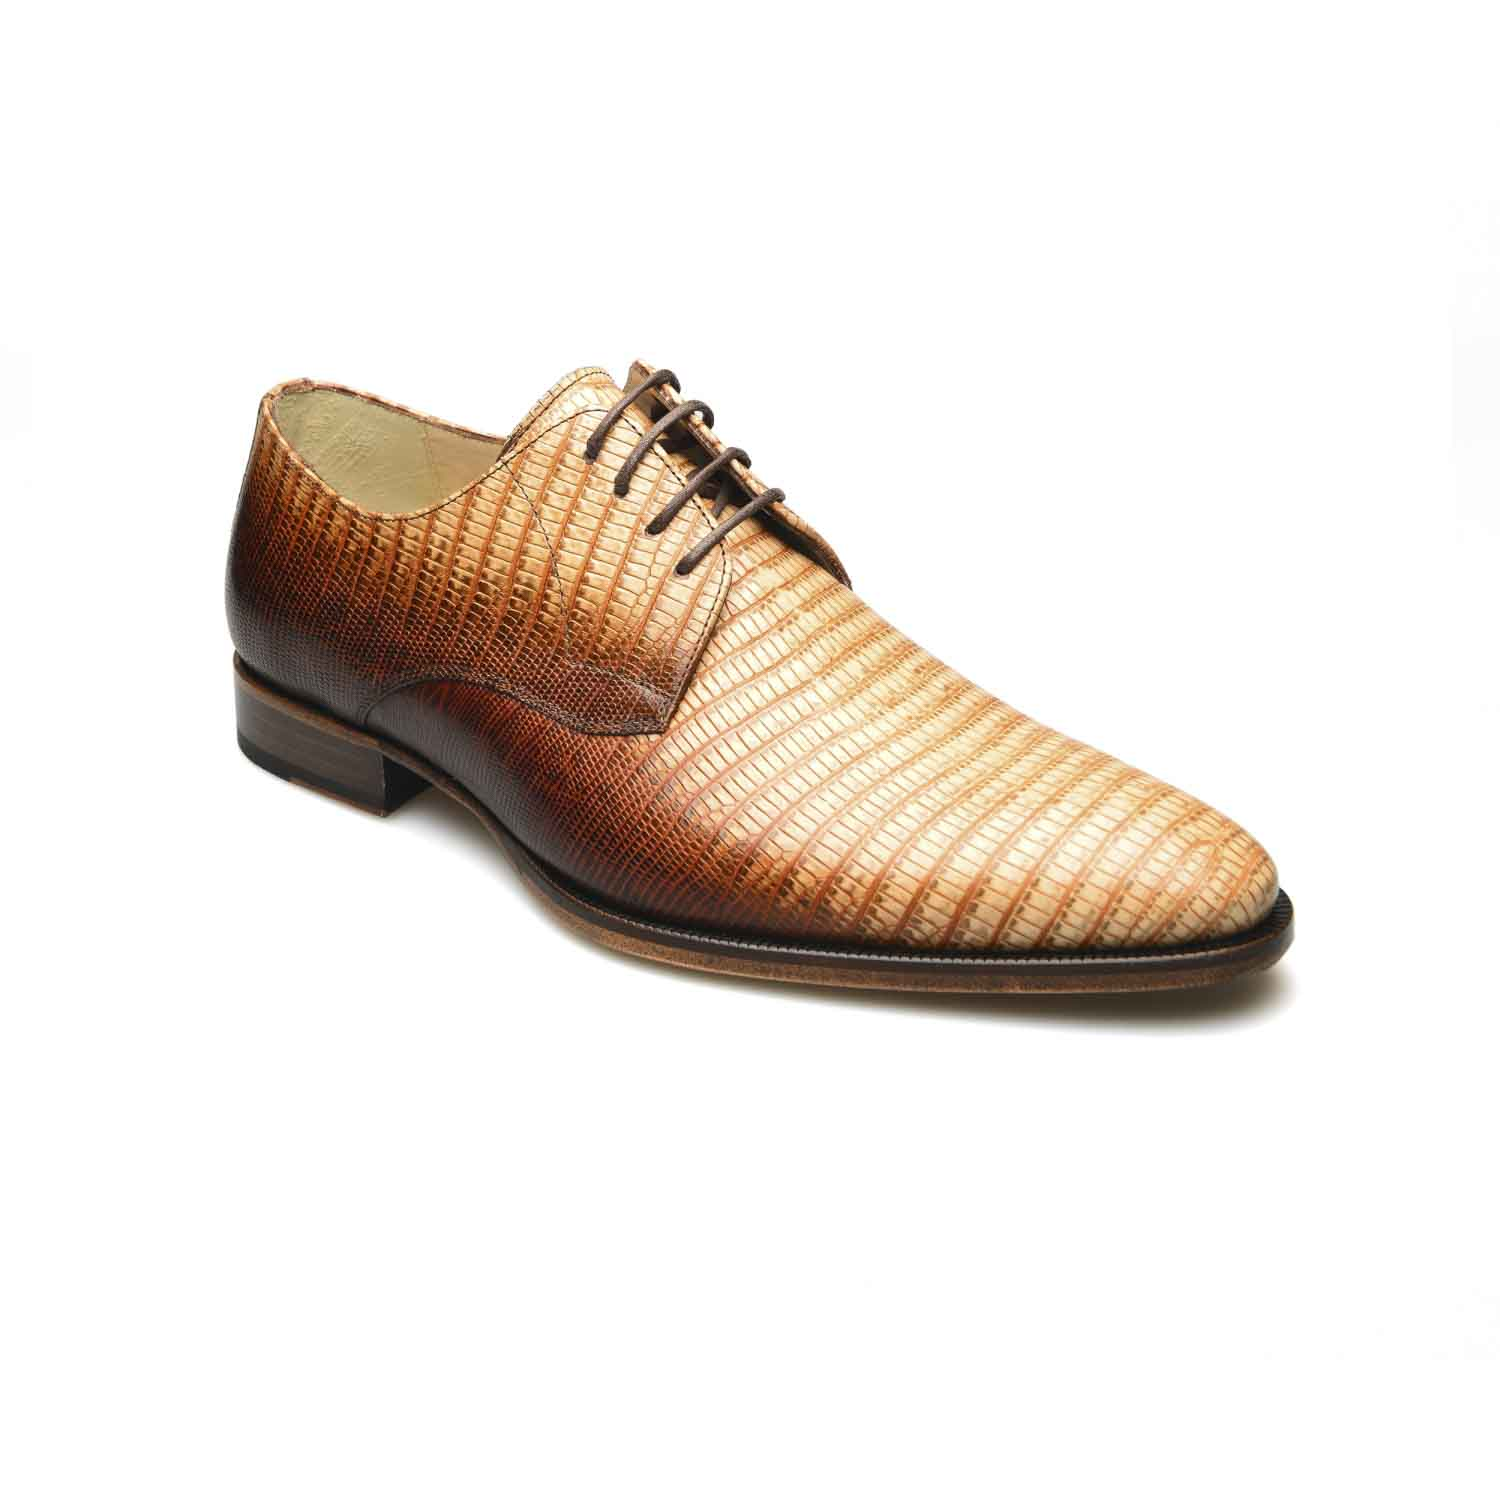 schoenen-cognac-kualla-white-wood-safari-025000392